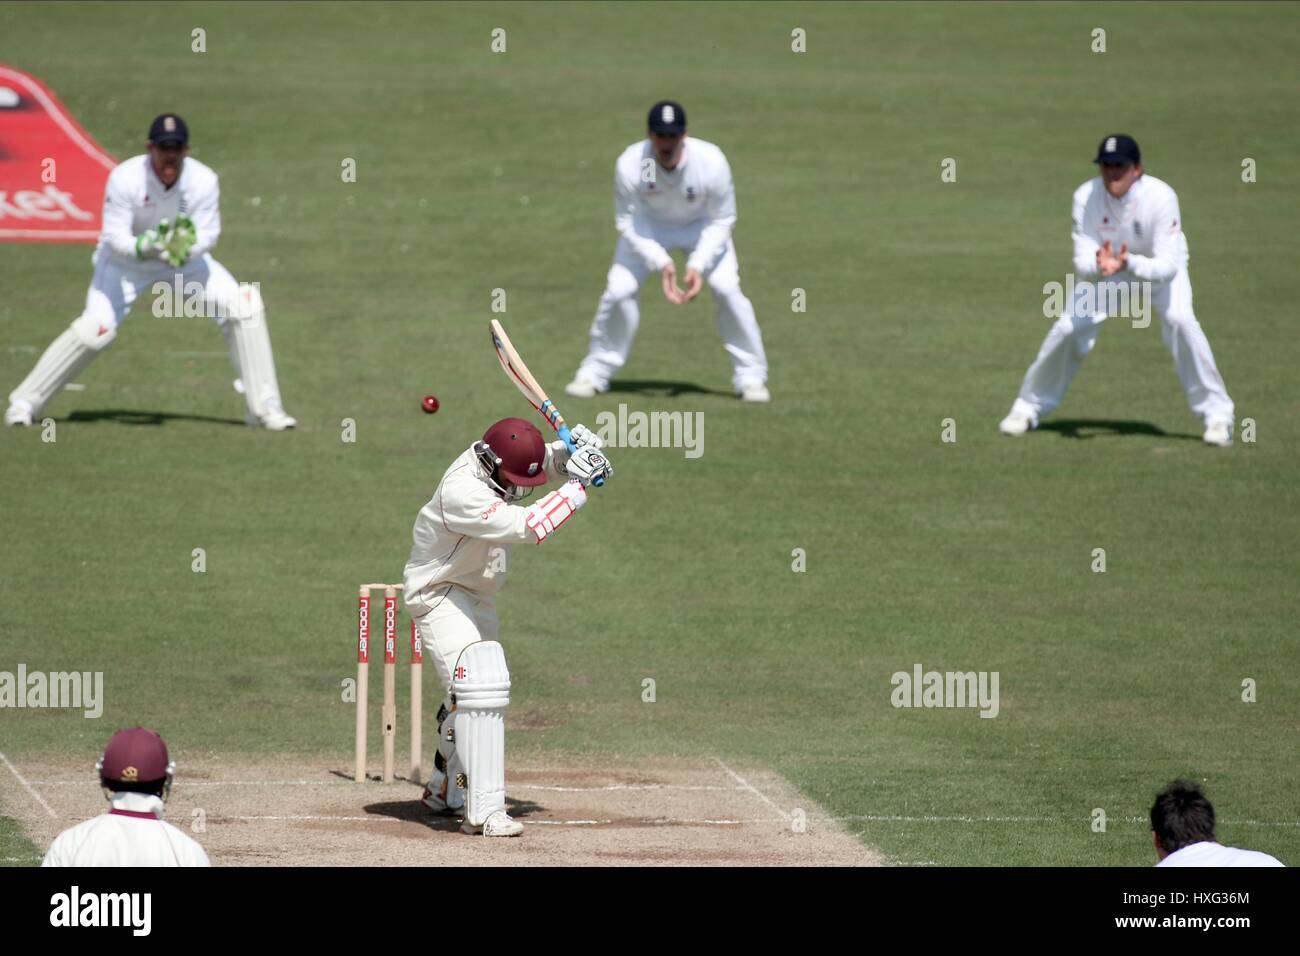 WICKET KEEPER & SLIPS ENGLAND V WEST INDIES THE RIVERSIDE CHESTER-LE-STREET ENGLAND 18 May 2009 - Stock Image